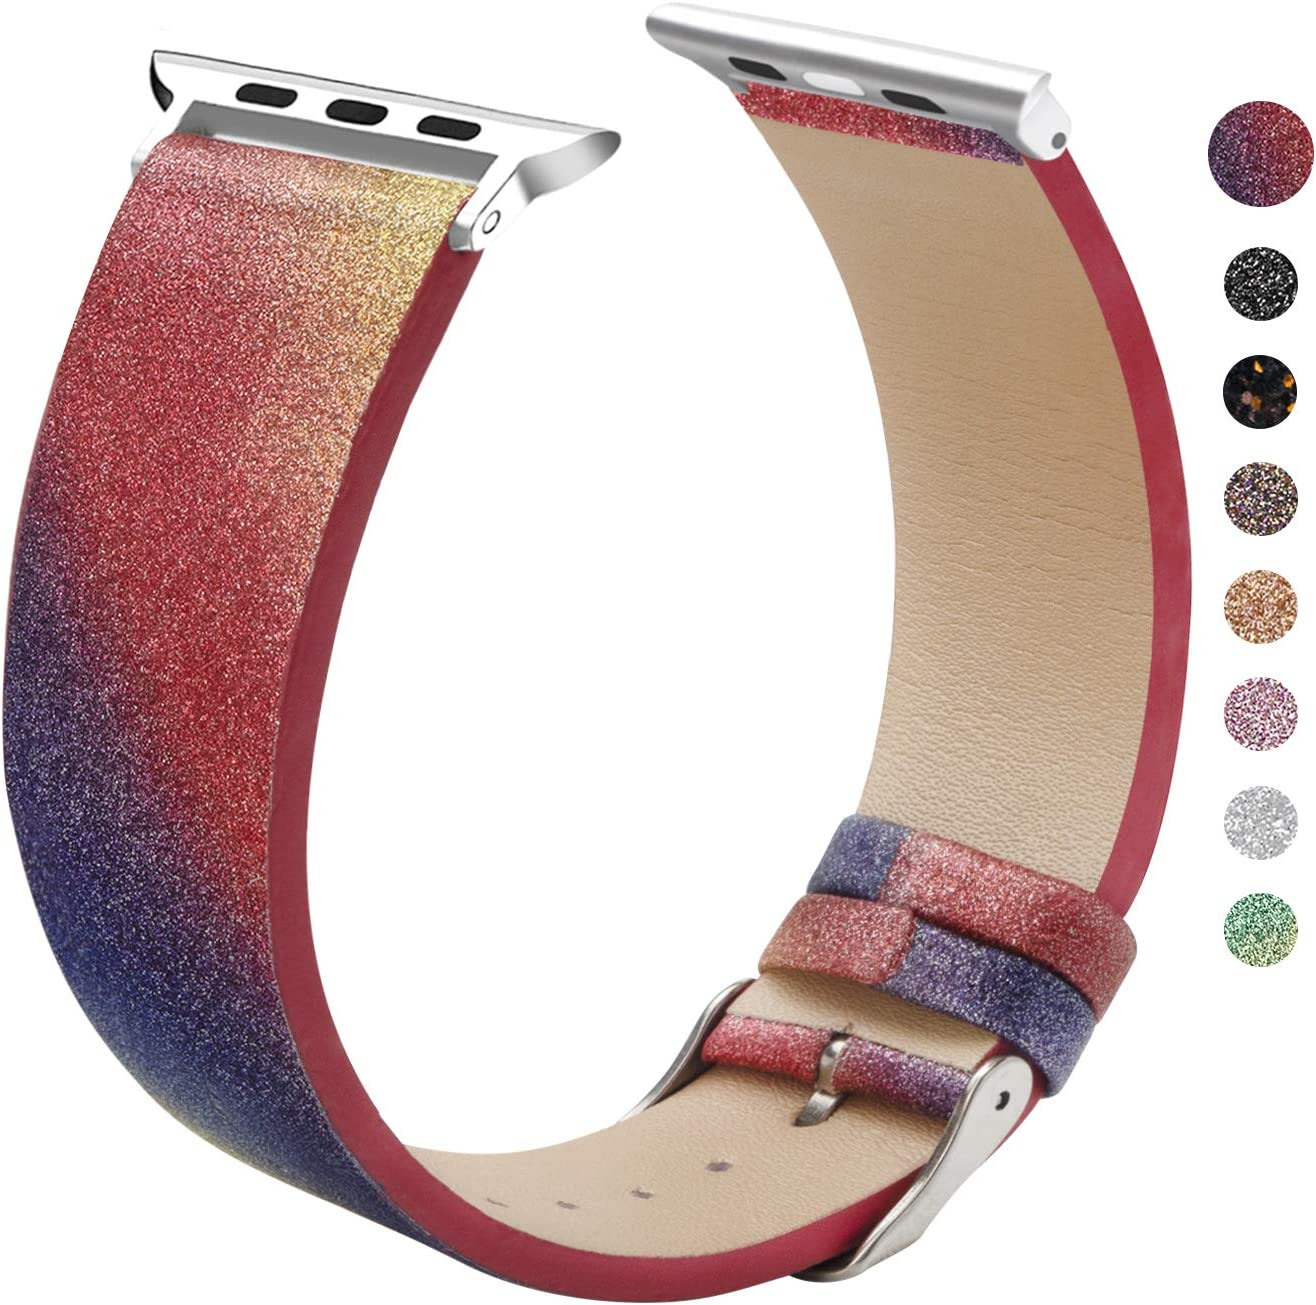 EurCross Watch Band Compatible with Apple Watch 42mm 44mm Shiny Strap Replacement Wristband for Women Glitter Bands Compatible with iWatch Series 6/SE/5/4/3/2/1 (Red Purple 42mm/44mm)